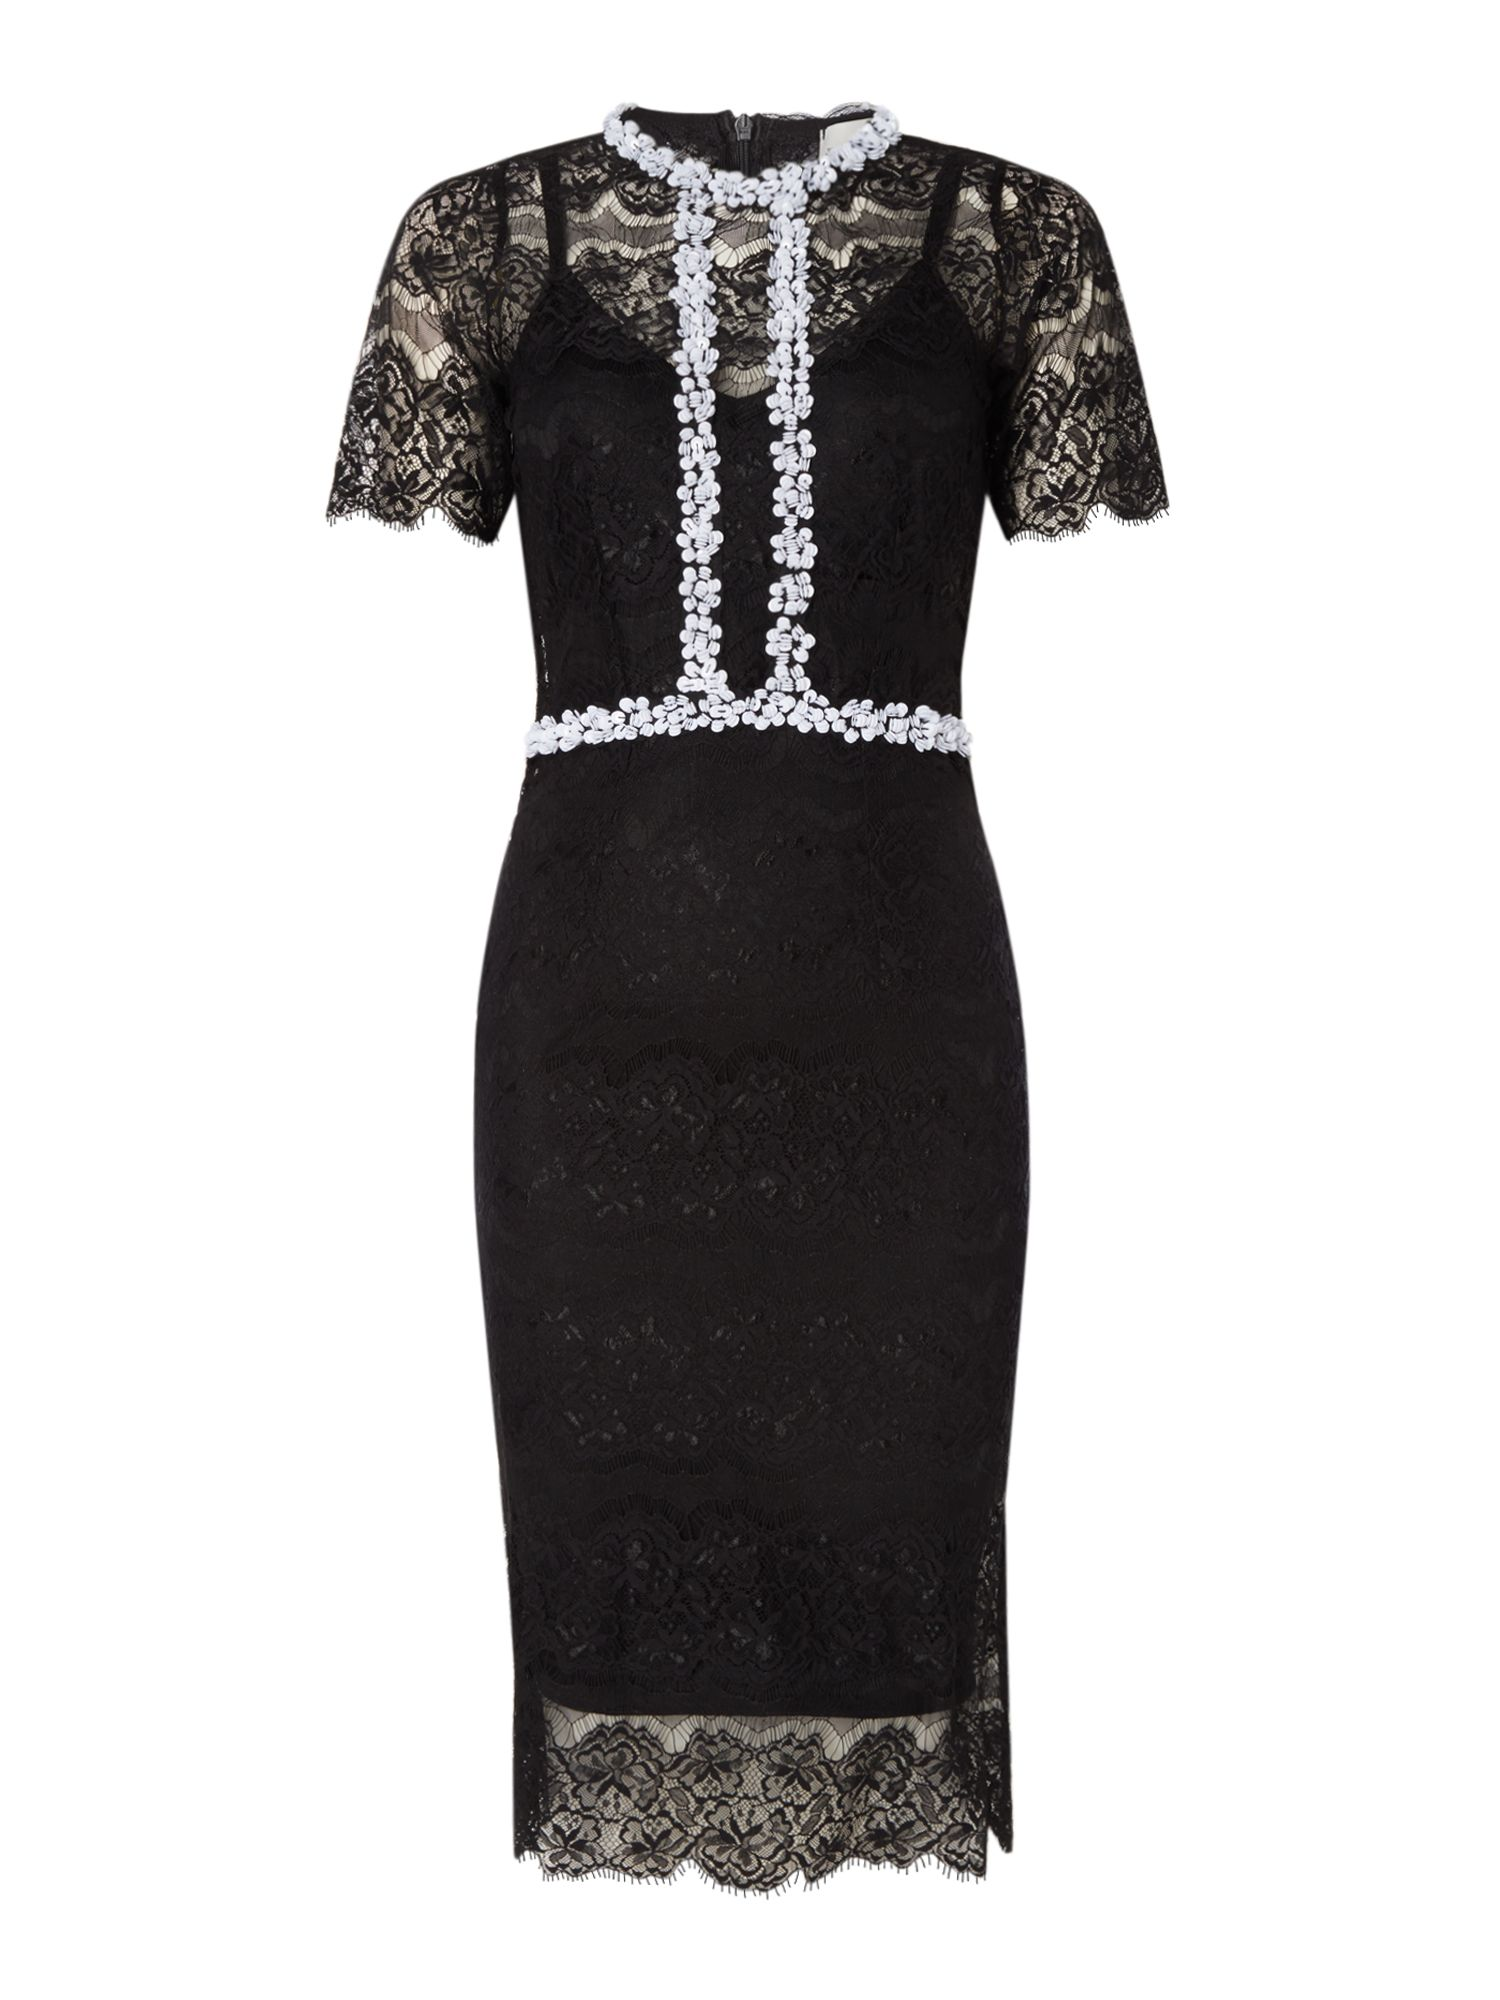 Body Frock Lace short sleeve dress with embellished trim, Black